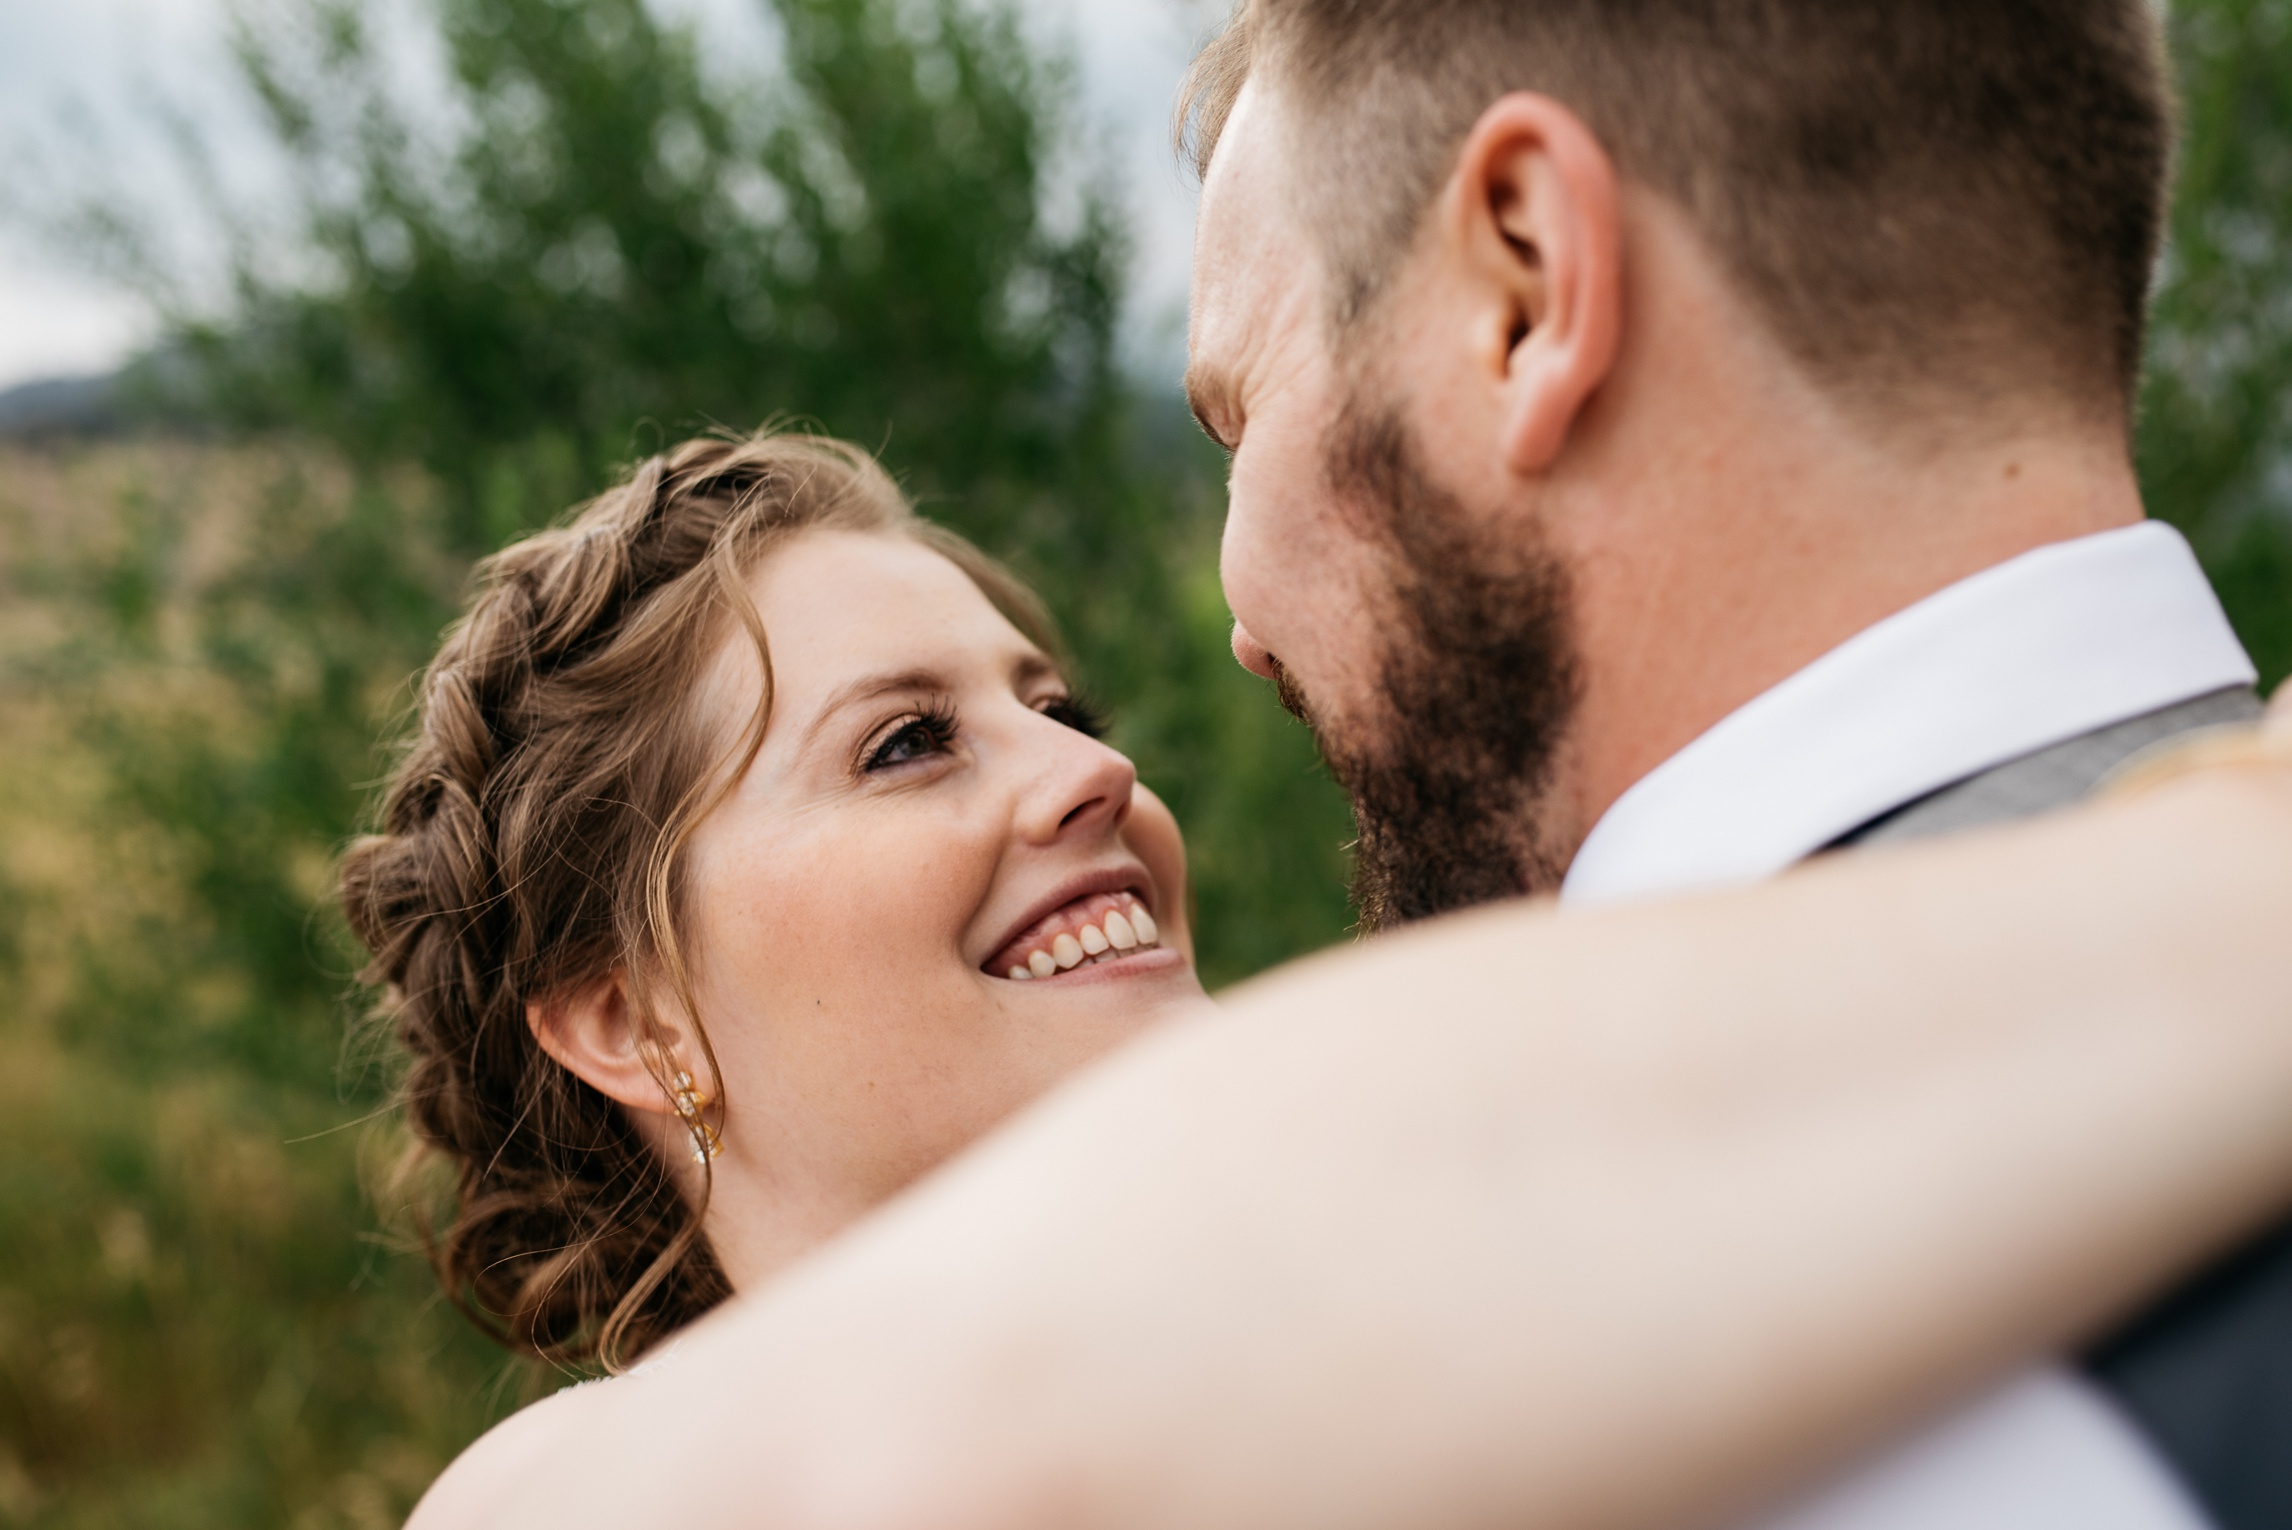 A bride and groom embrace on their wedding day at Sylvan Dale Guest Ranch outside Loveland, Colorado. Wedding photography by Sonja Salzburg of Sonja K Photography.